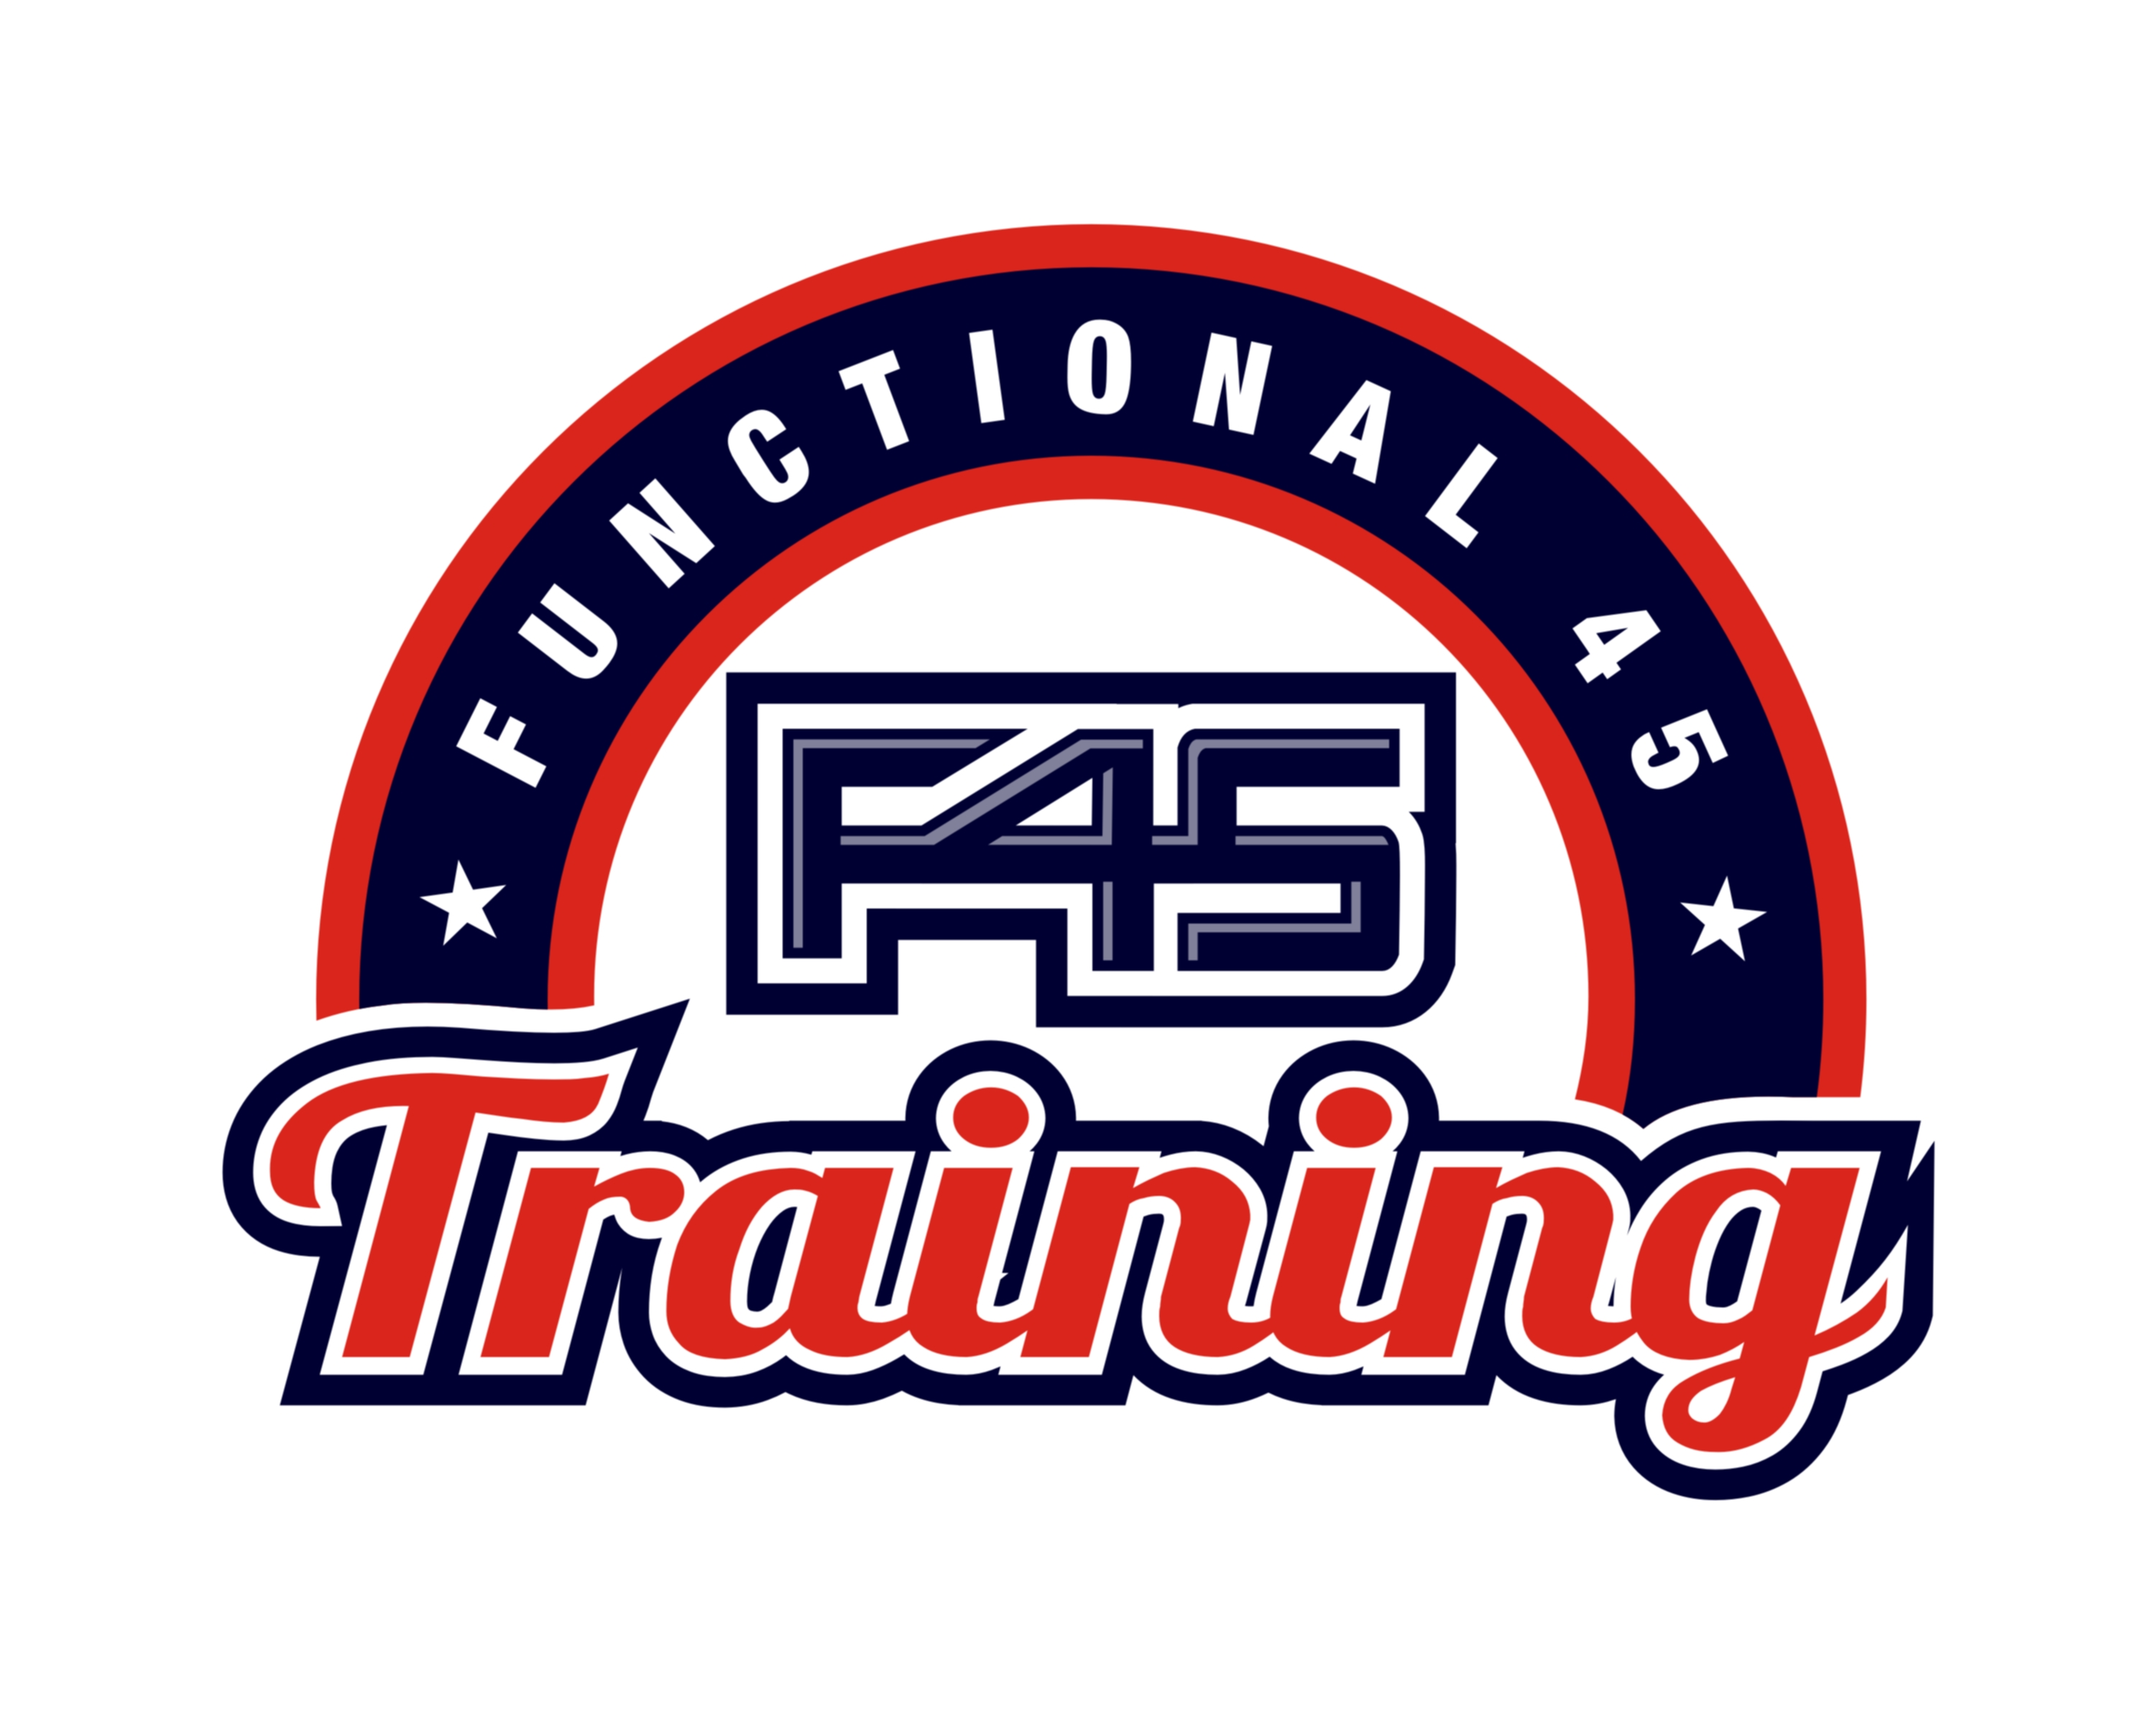 sold-f45-functional-training-for-sale-inner-suburb-of-melbourne-1